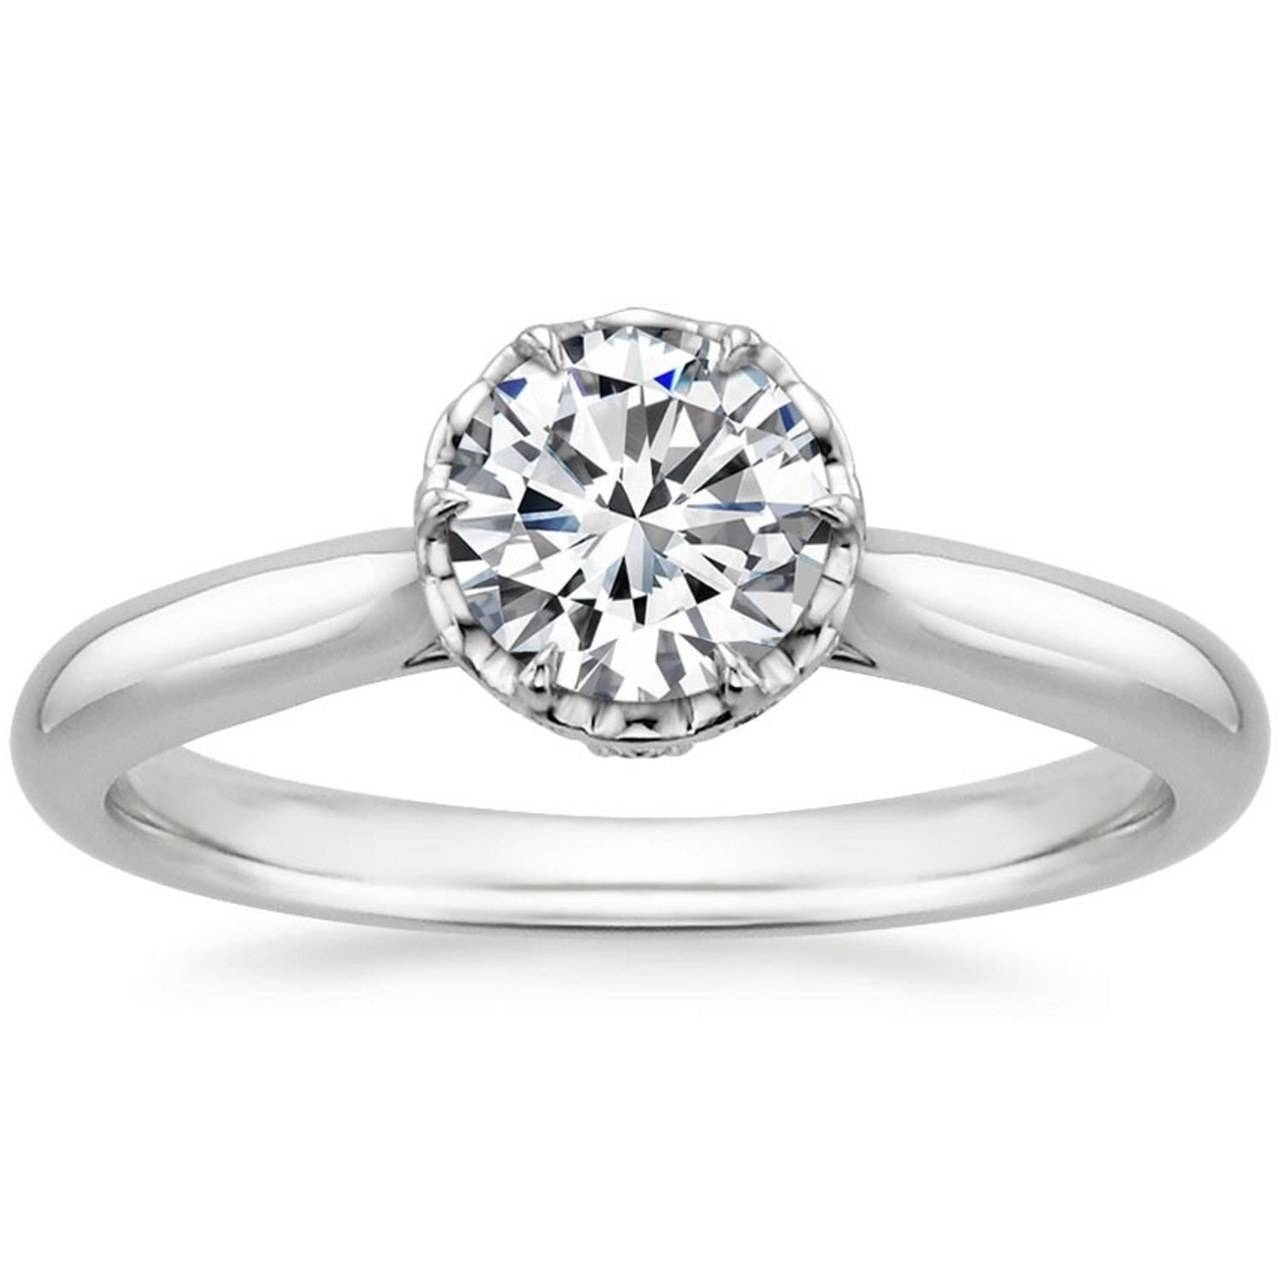 Engagement Rings: Conflict Free Diamond Engagement Rings; Dainty Throughout 5 Diamond Engagement Rings (View 6 of 15)